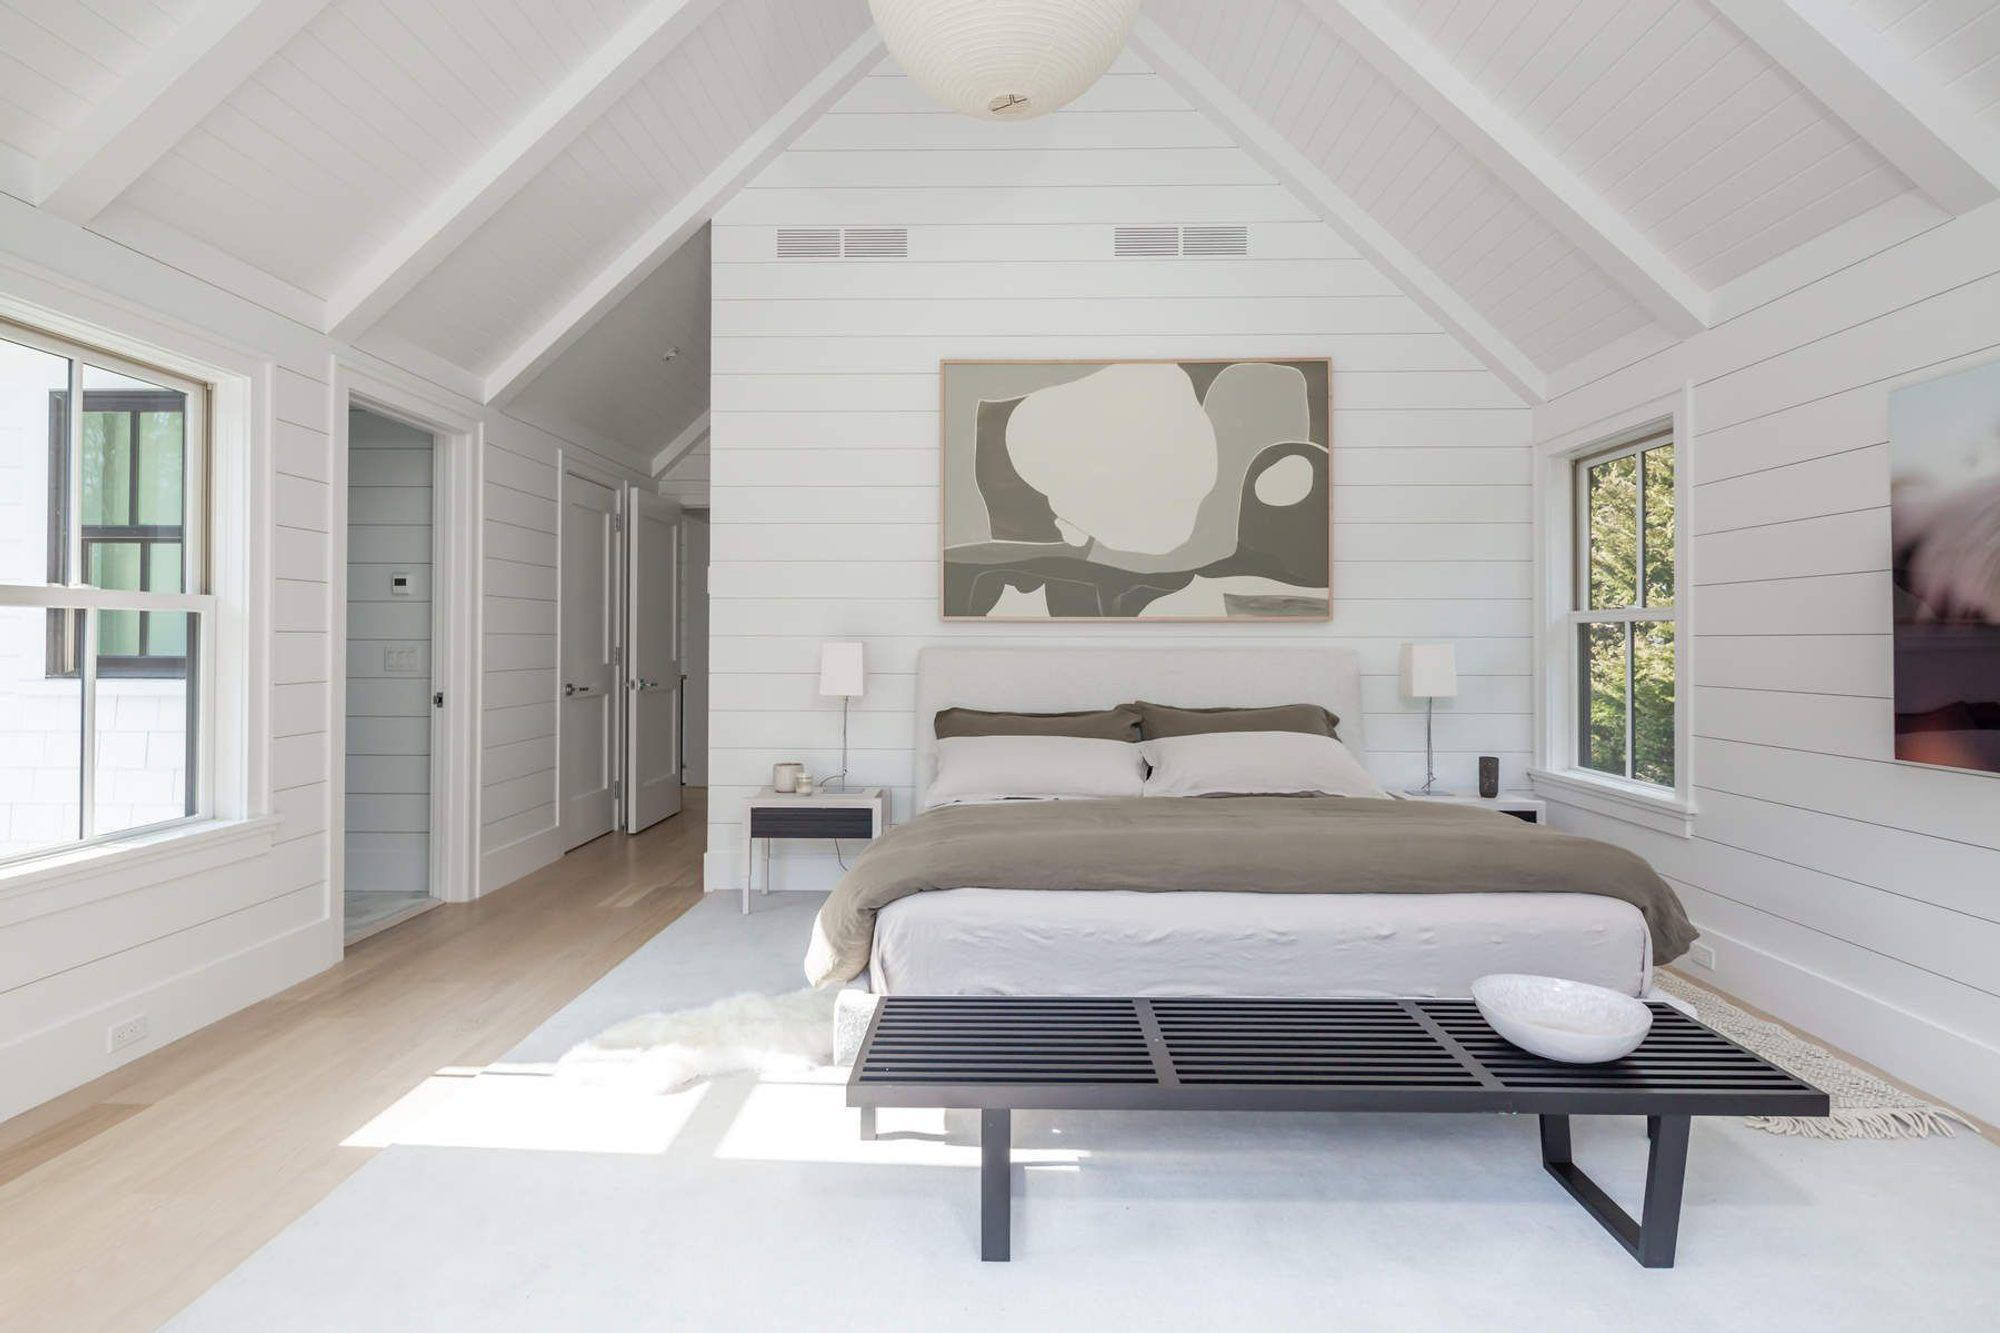 Modern farmhouse bedroom with vaulted ceilings finished with shiplap.